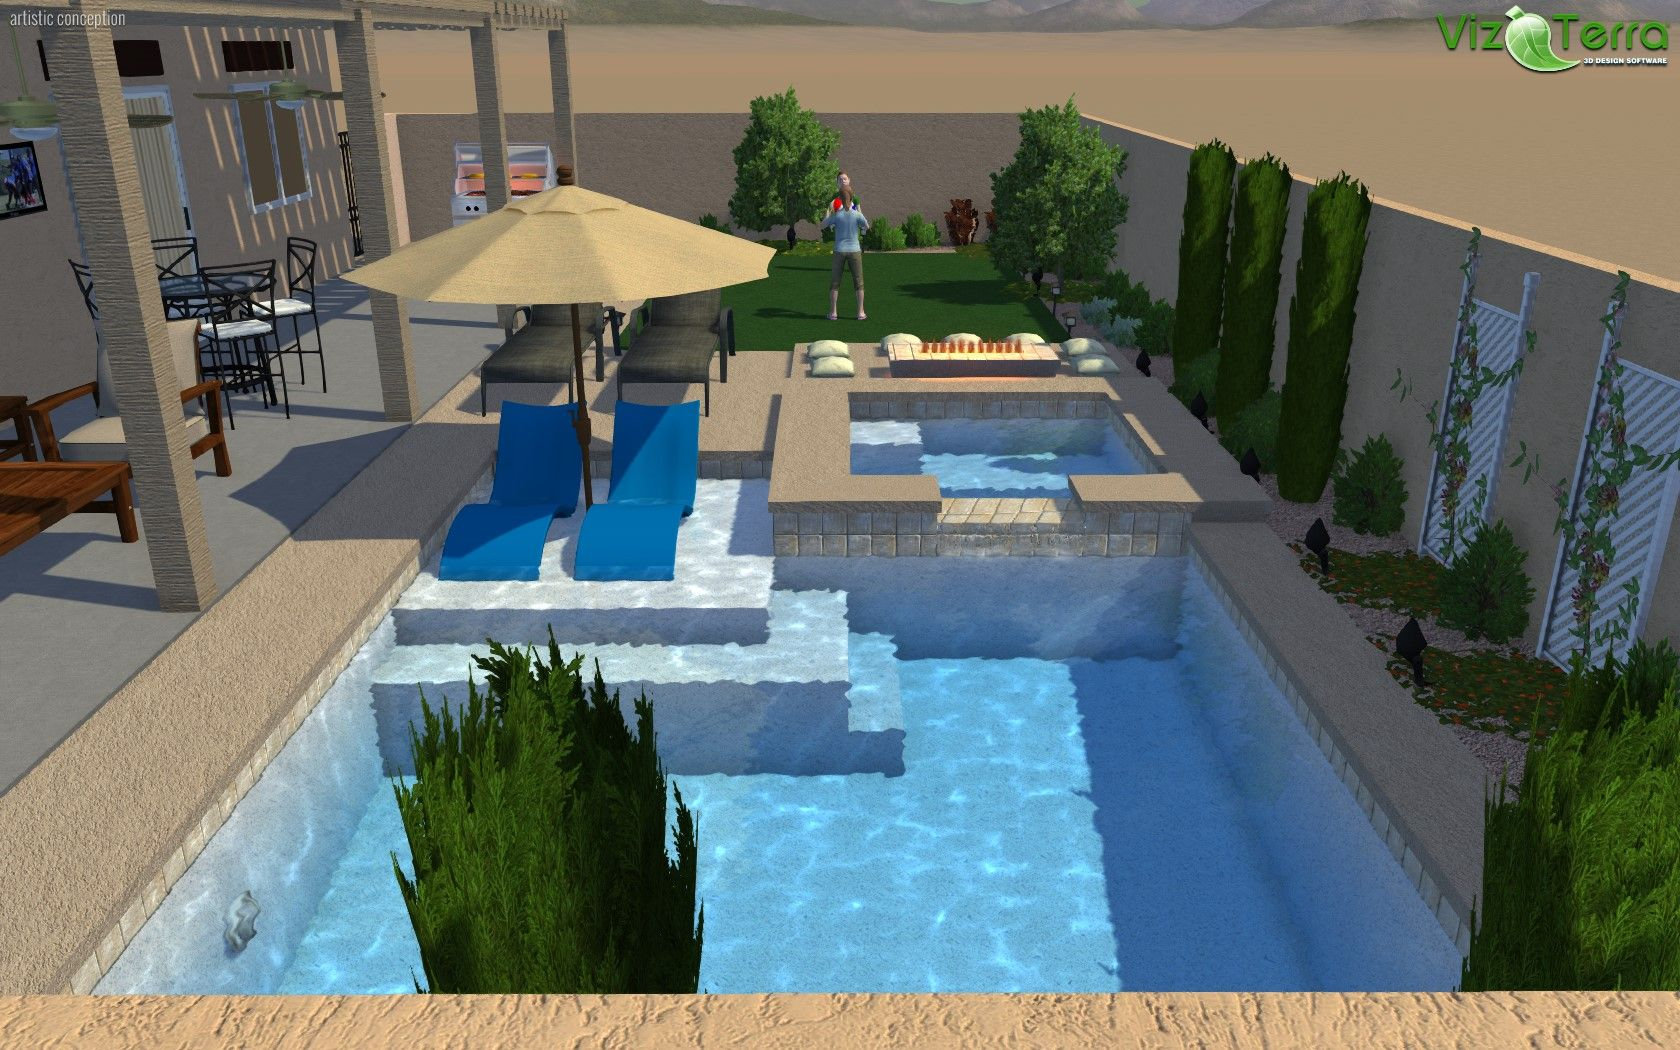 3d swimming pool design software. 3D Landscape And Pool Design. This Job Has Everything You Know Want In A Small Backyard. With Wet Deck Spa, Raised Fire Pit, Extended Patio Cover 3d Swimming Design Software